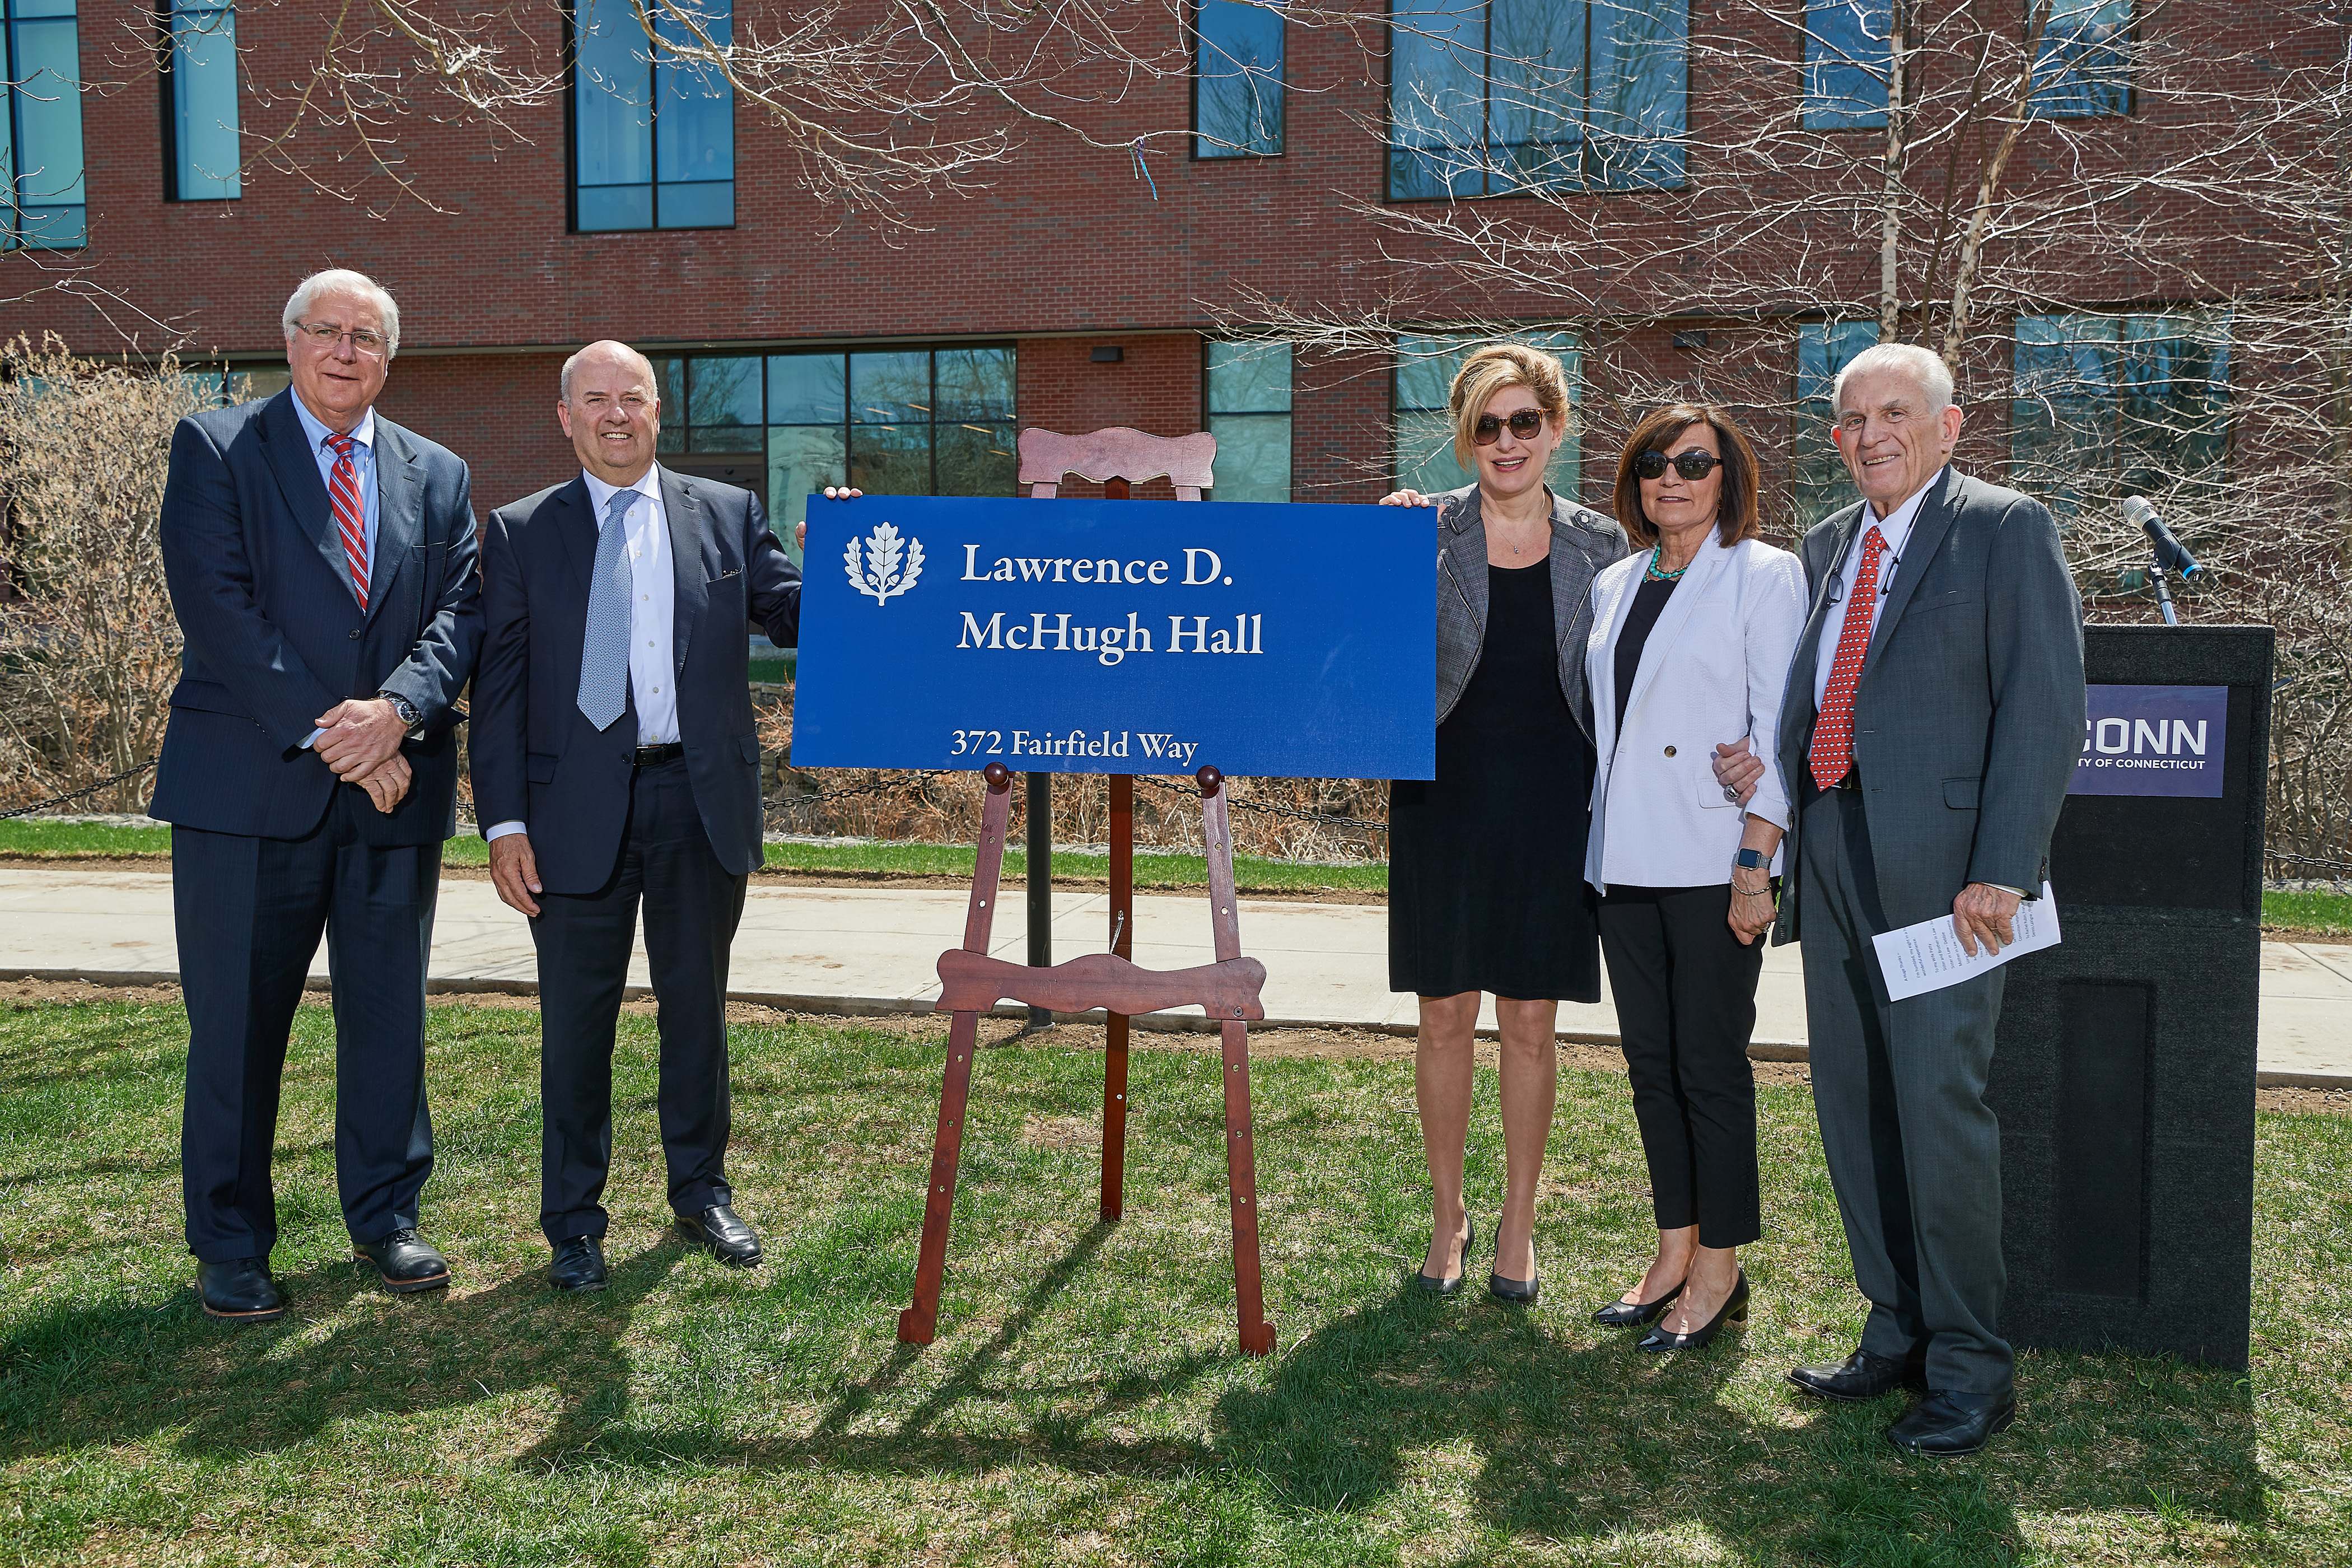 From left, Thomas Ritter '77 JD, Thomas Kruger, President Susan Herbst, Patricia McHugh, and Larry McHugh at the ceremony held to celebrate the naming of Lawrence D. McHugh Hall on May 2, 2018. (Peter Morenus/UConn Photo)